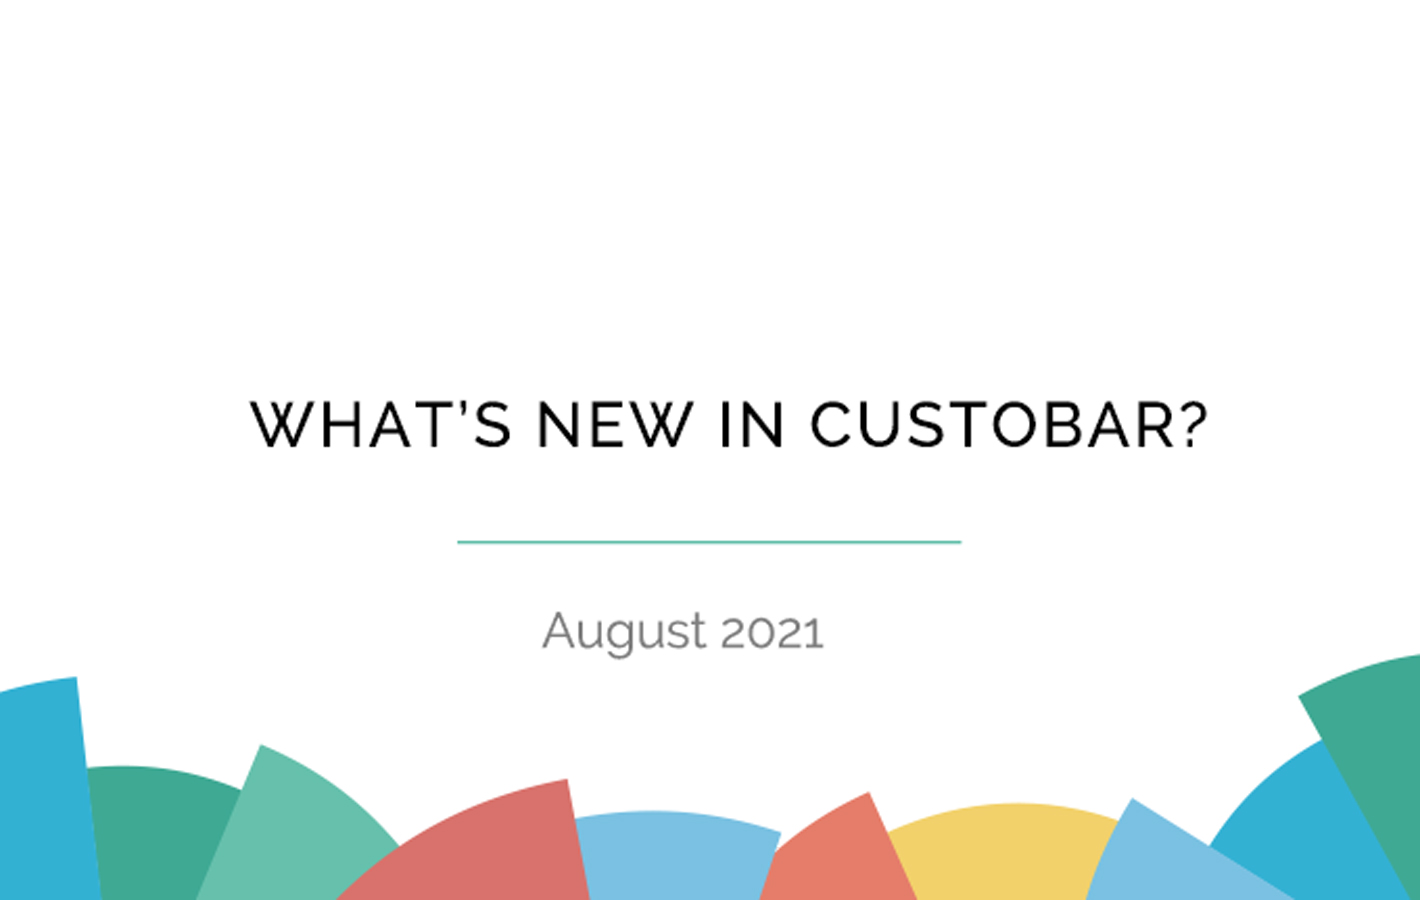 What's new in Custobar in August 2021?